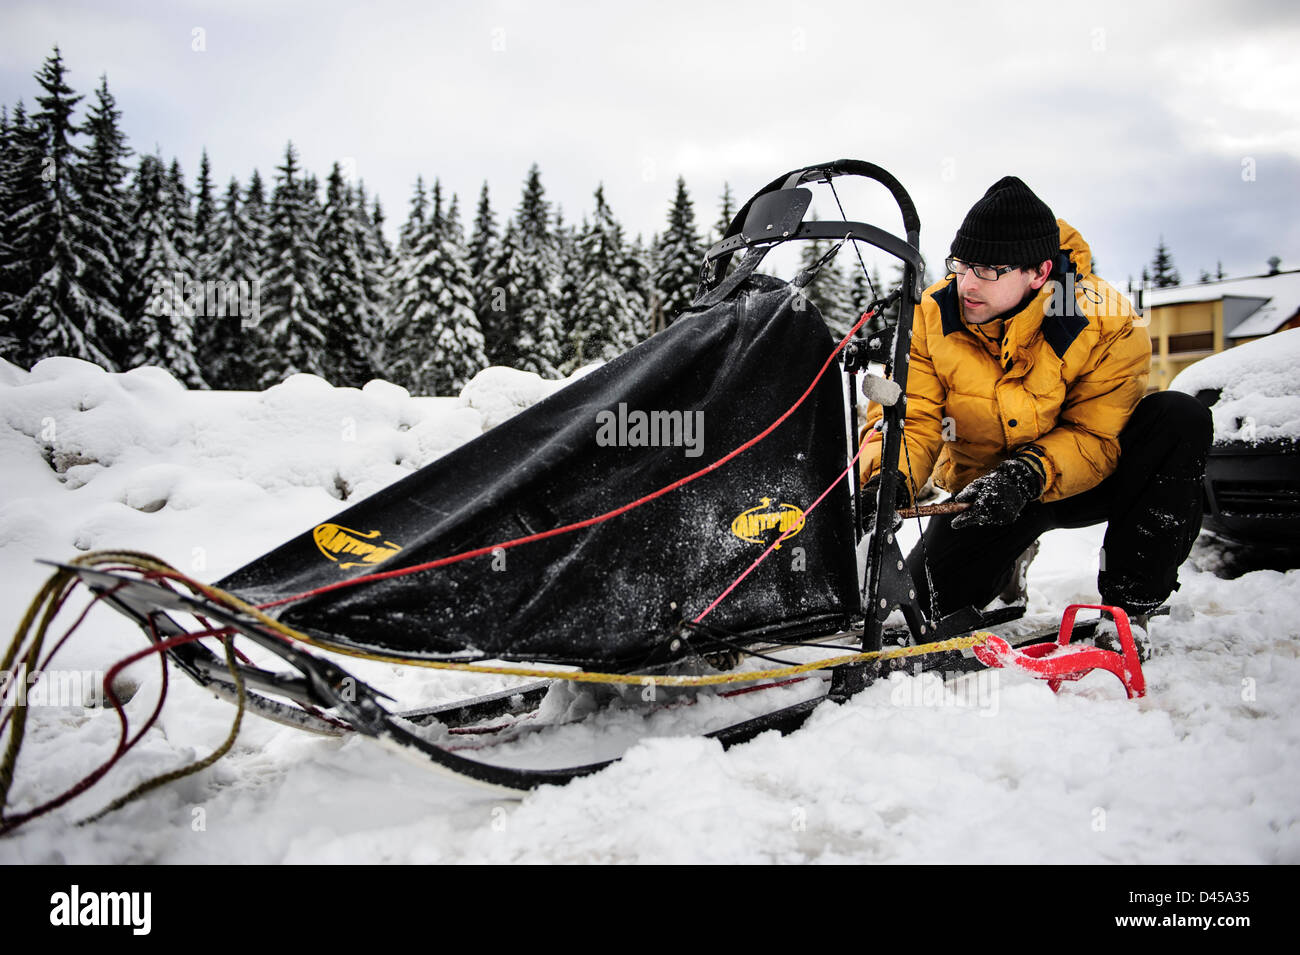 A musher preparing his sled before the competition, Jakuszyce, Poland. - Stock Image